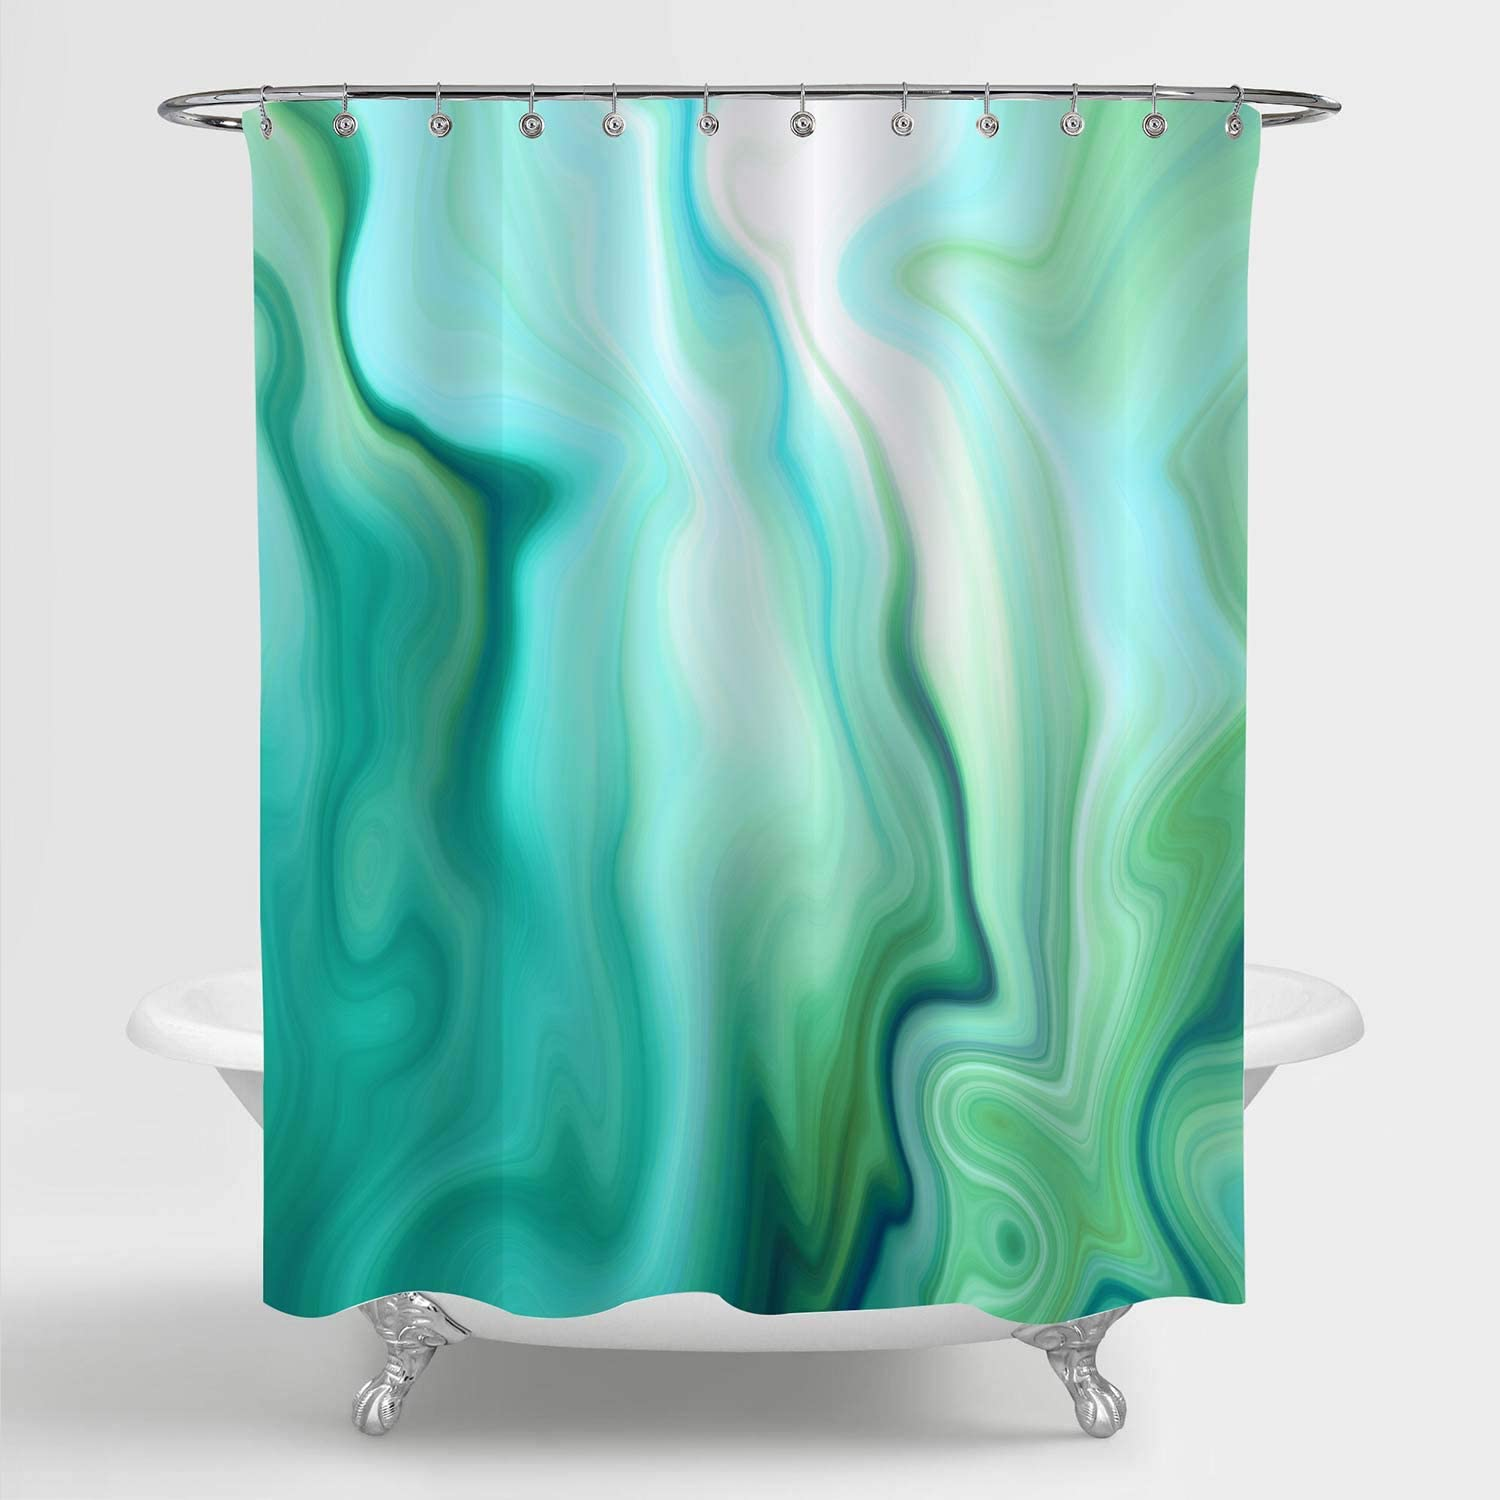 MitoVilla Seafoam Green Ombre Marble Shower Curtain, Turquoise Mint Lime Green Striped Wave Bathroom Art Print for Green Home Decor, Waterproof Washable Fabric Bathroom Curtain, 72